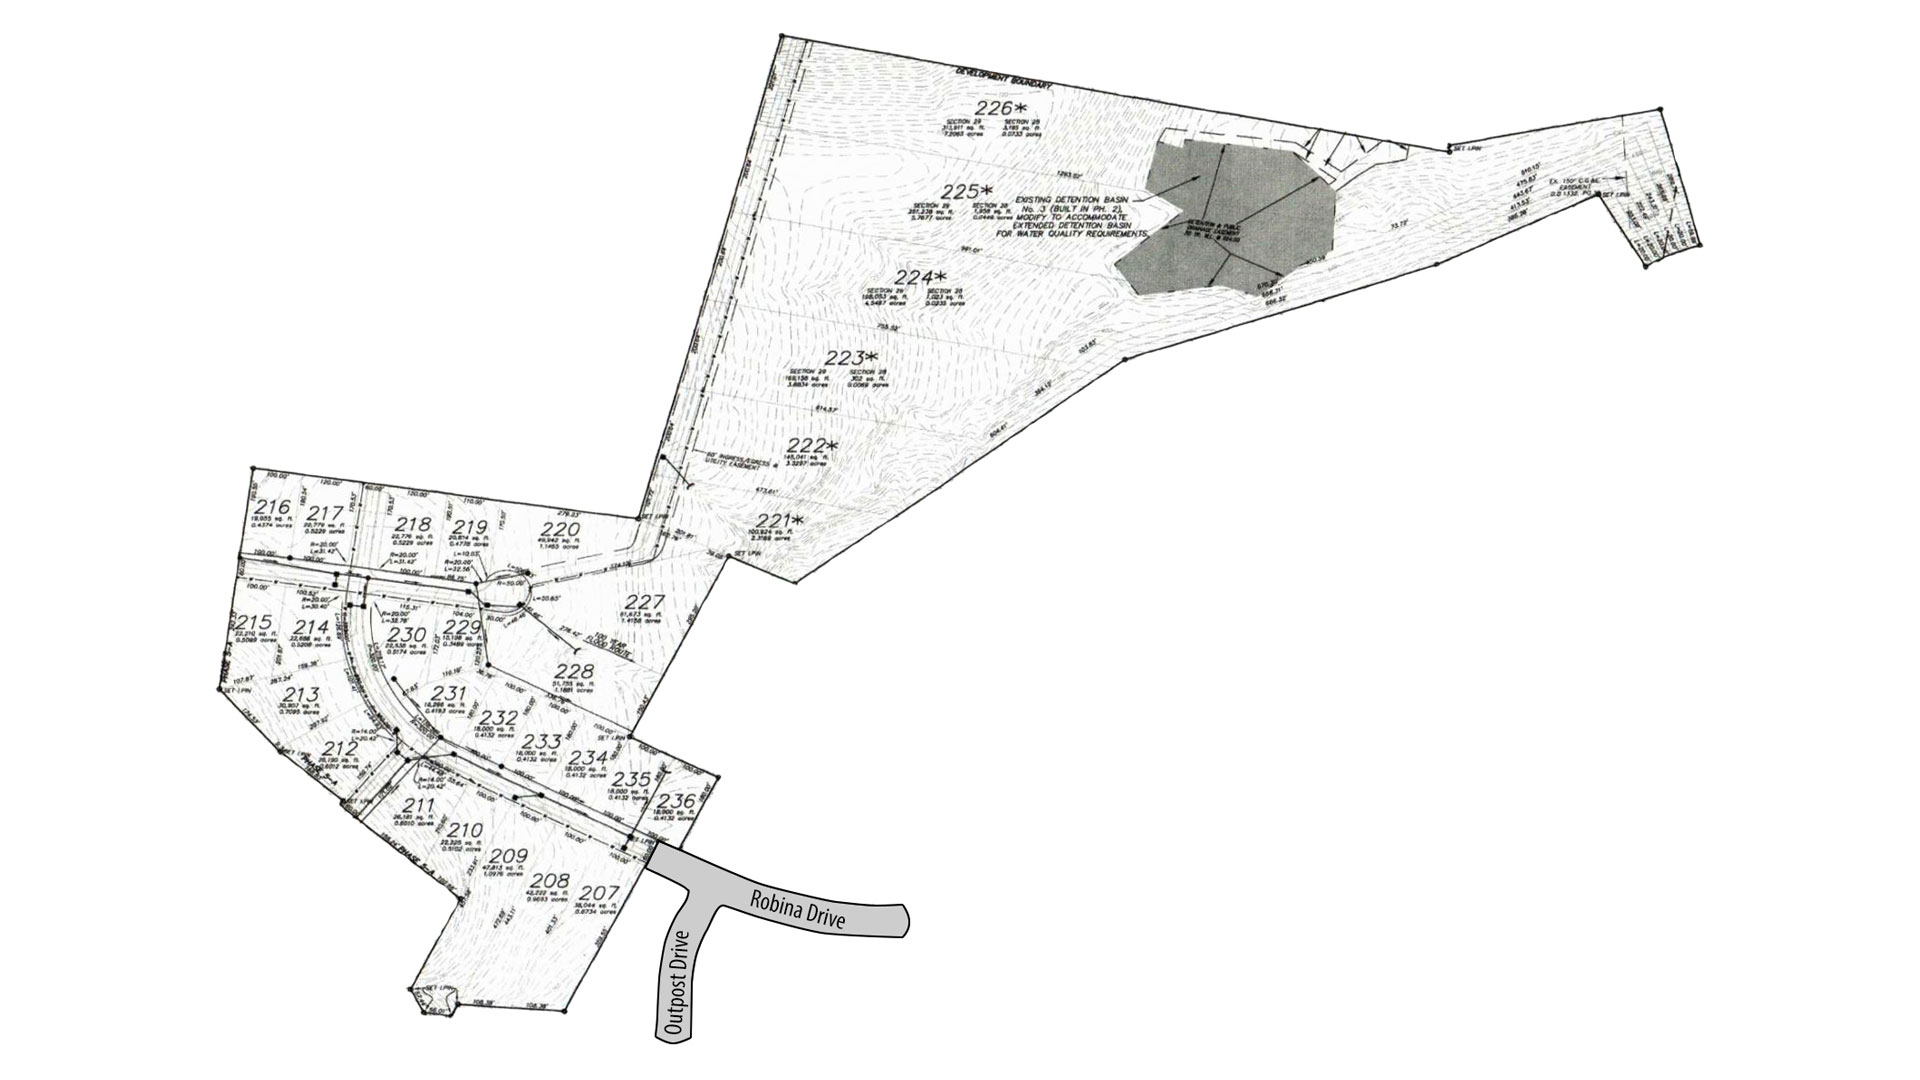 Section 5 Site Map